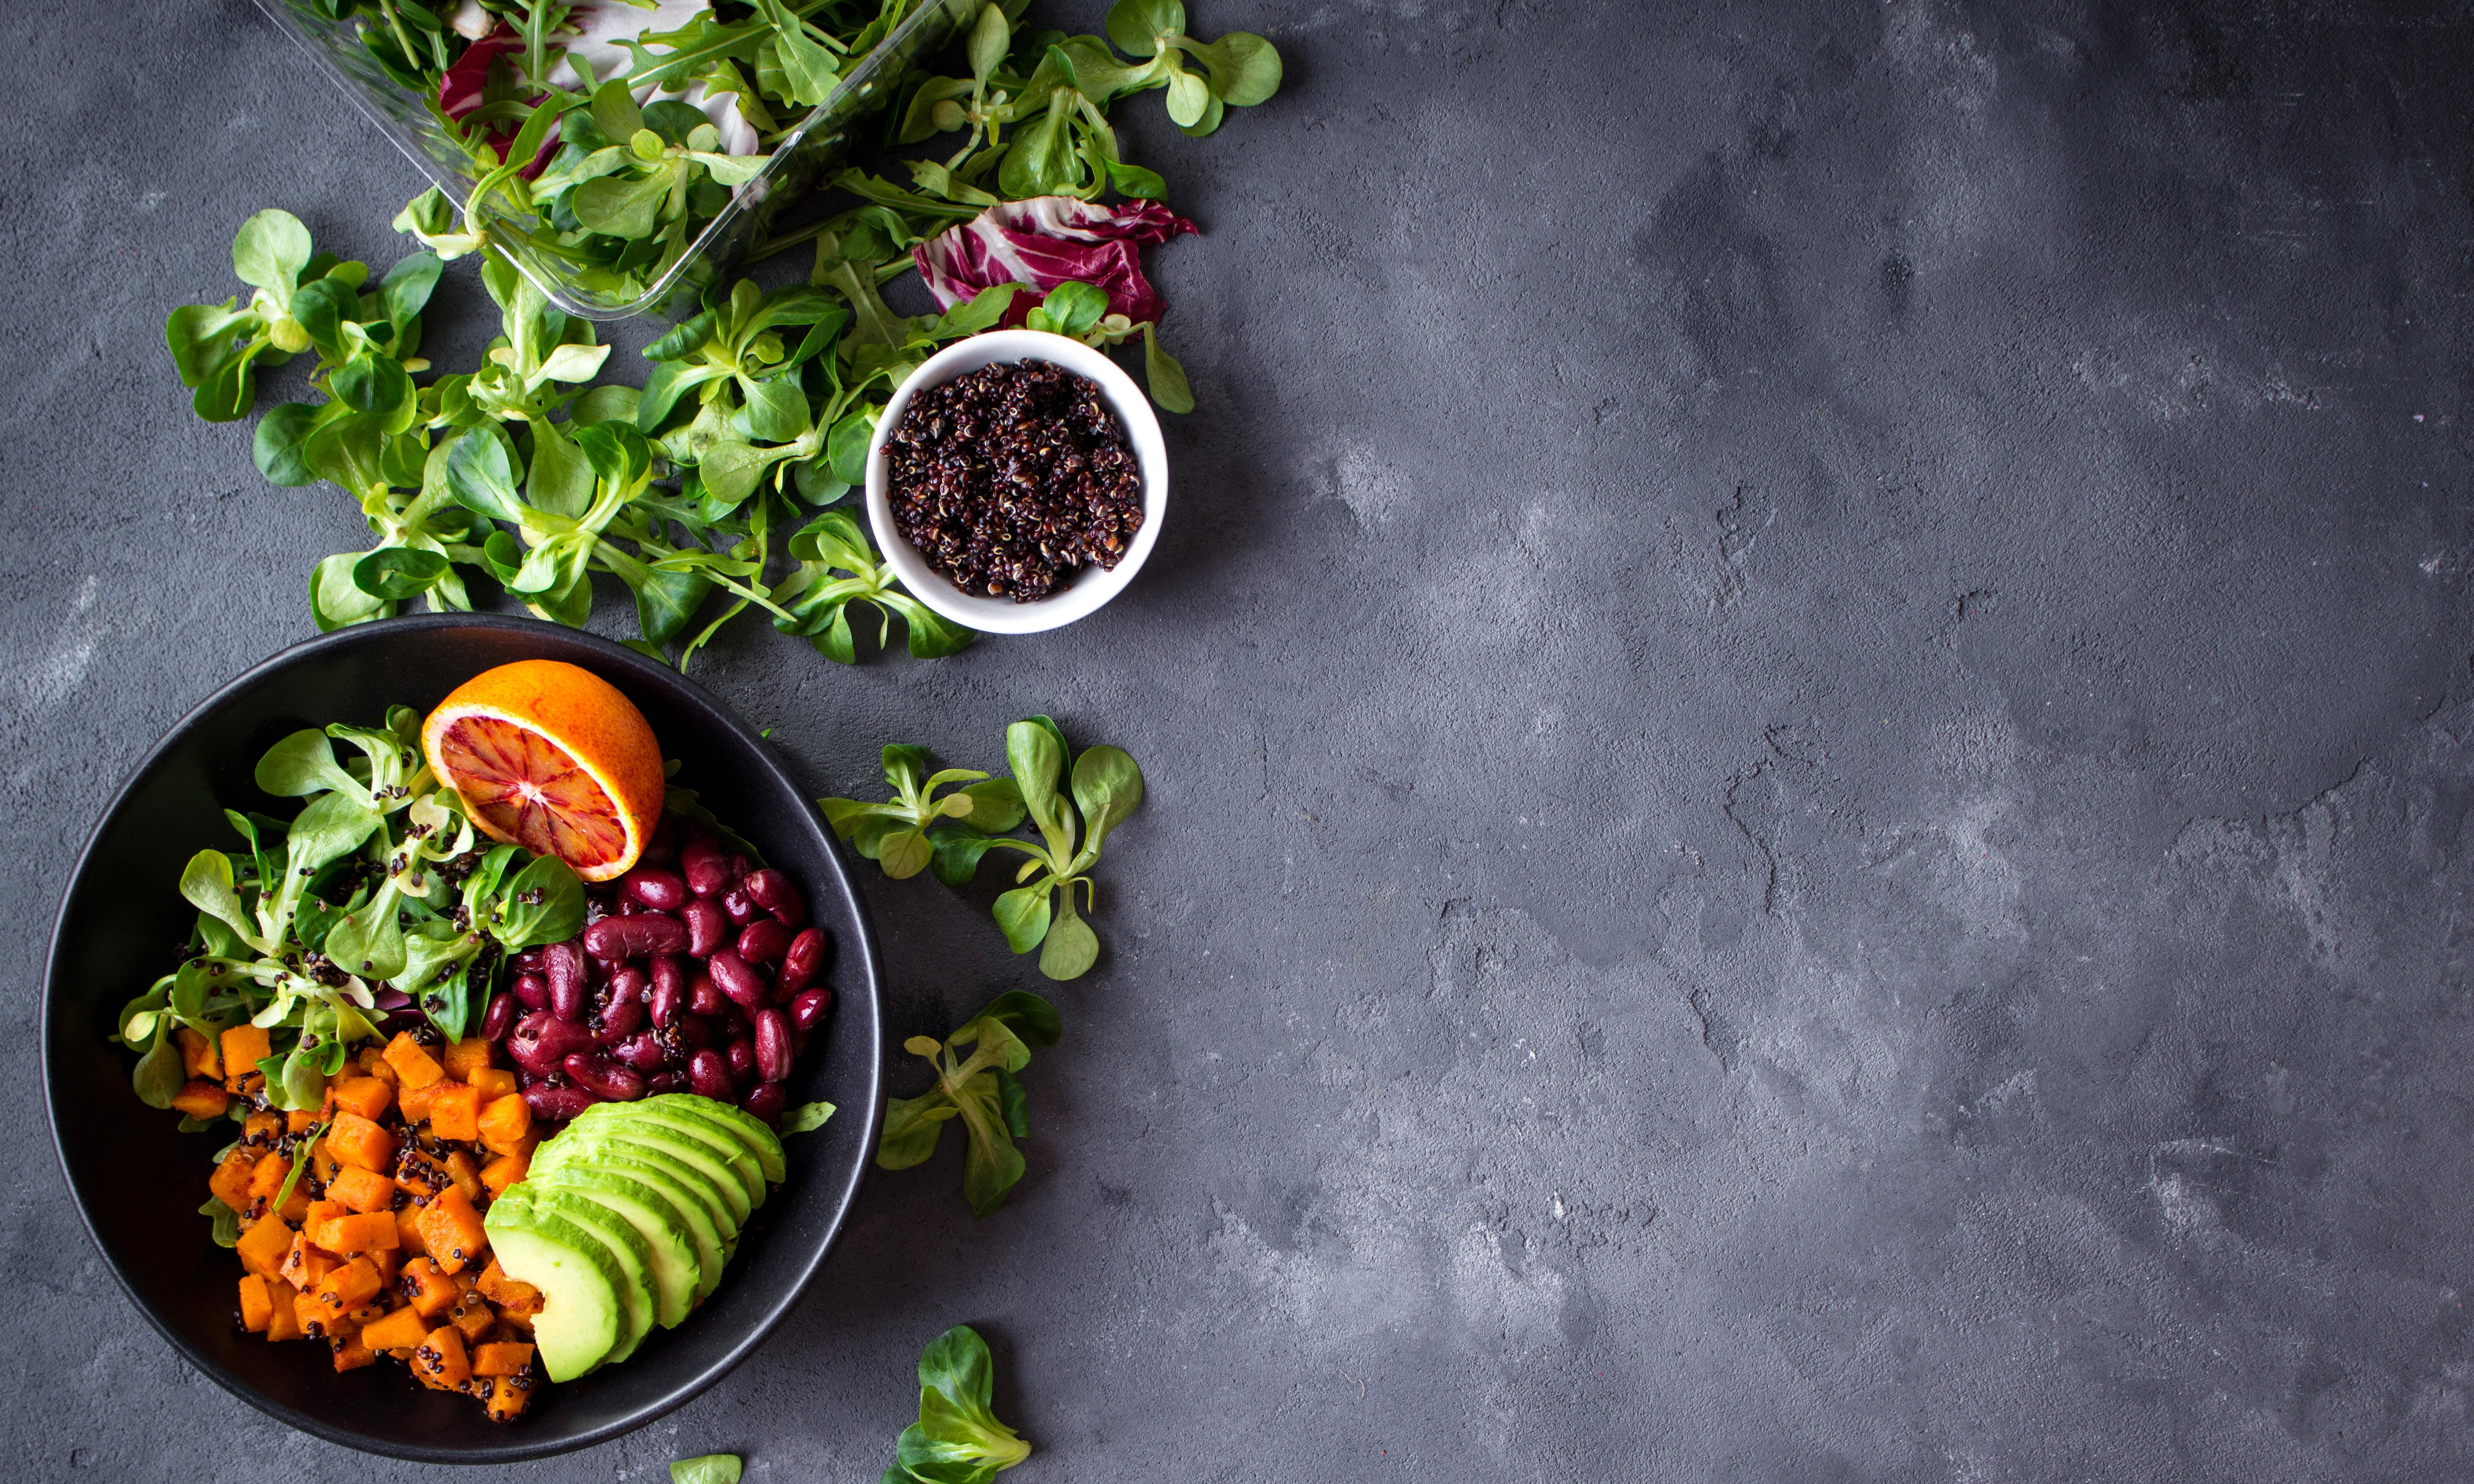 A dietitian's guide to 'clean eating': what it is and how to do it right